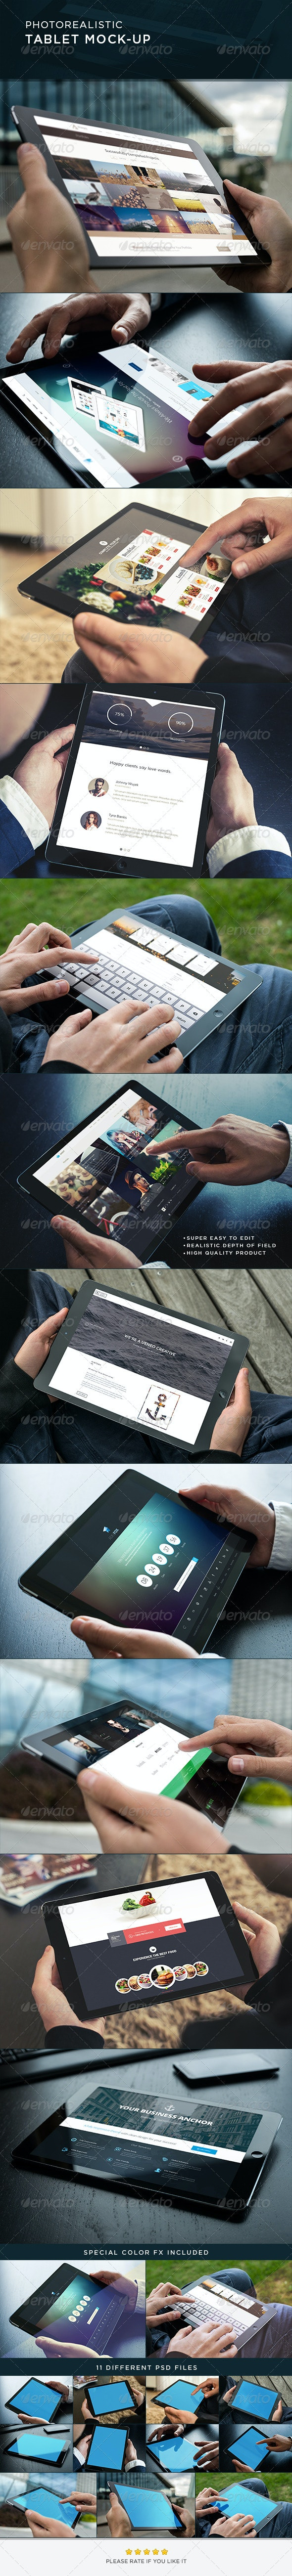 Photorealistic Tablet Mock-Up - Mobile Displays